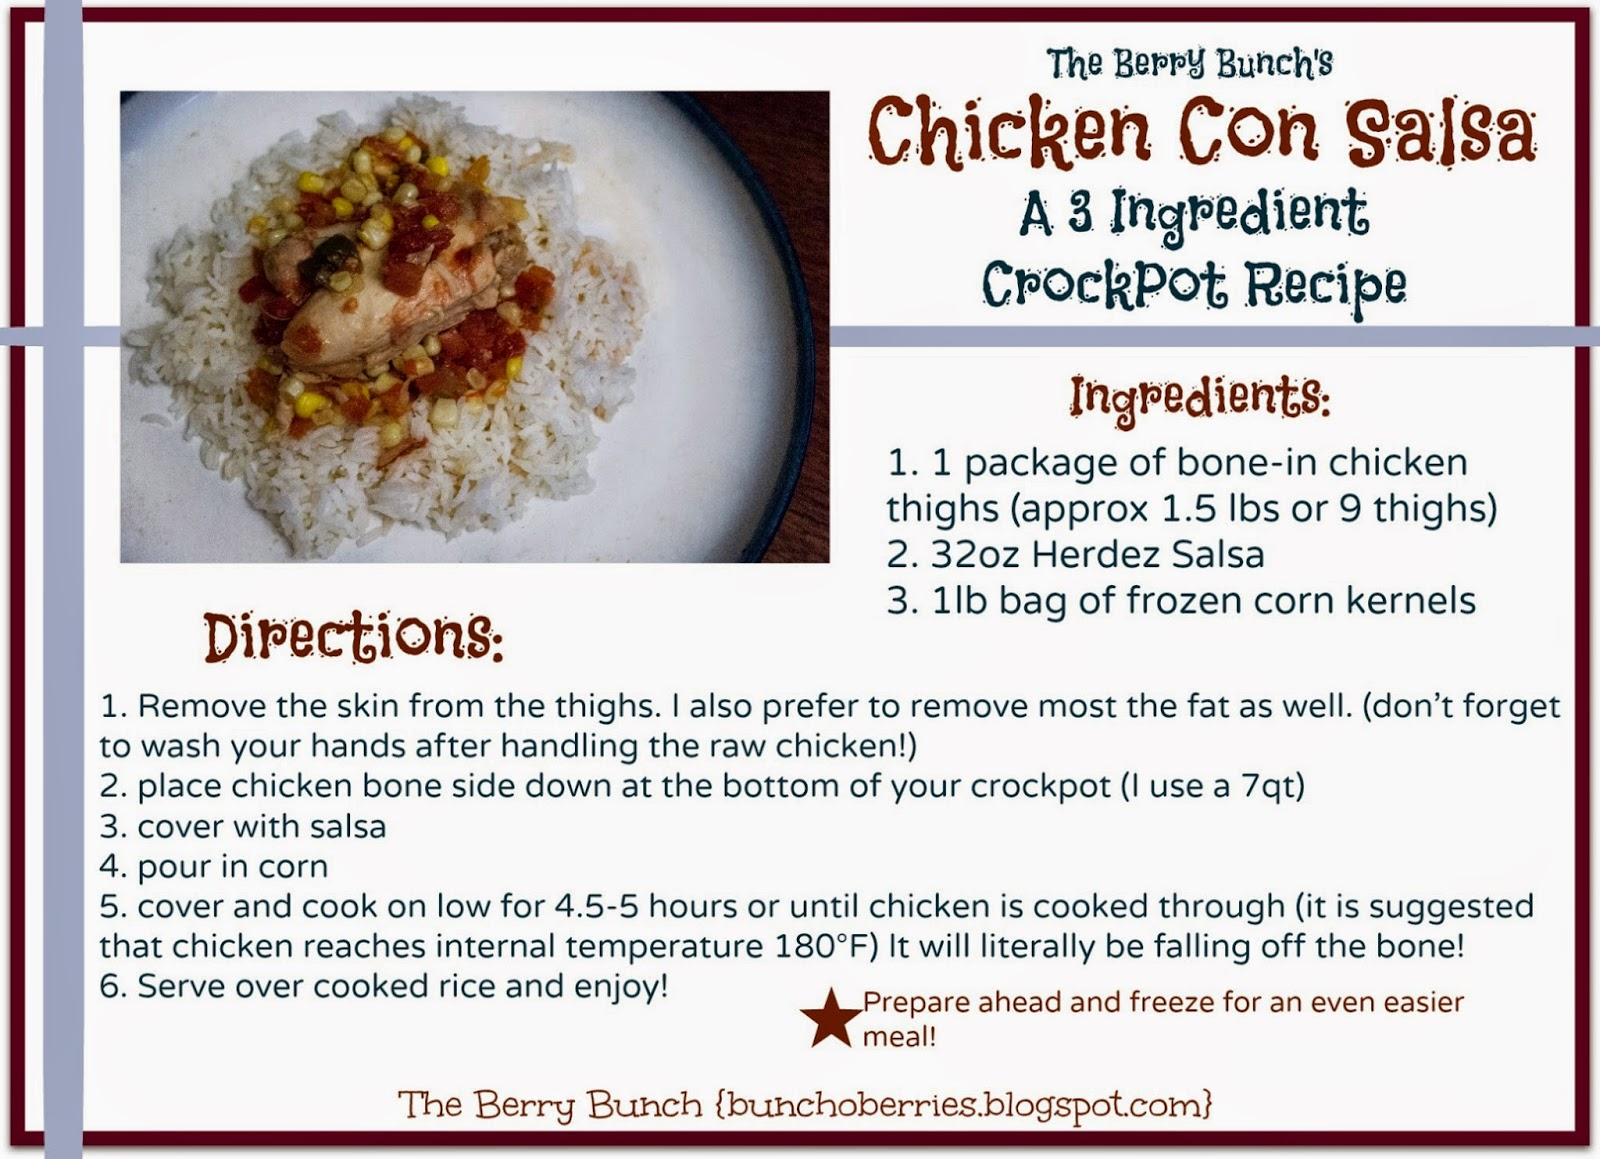 The Berry Bunch: Chicken Con Salsa printable 5x7 recipe card